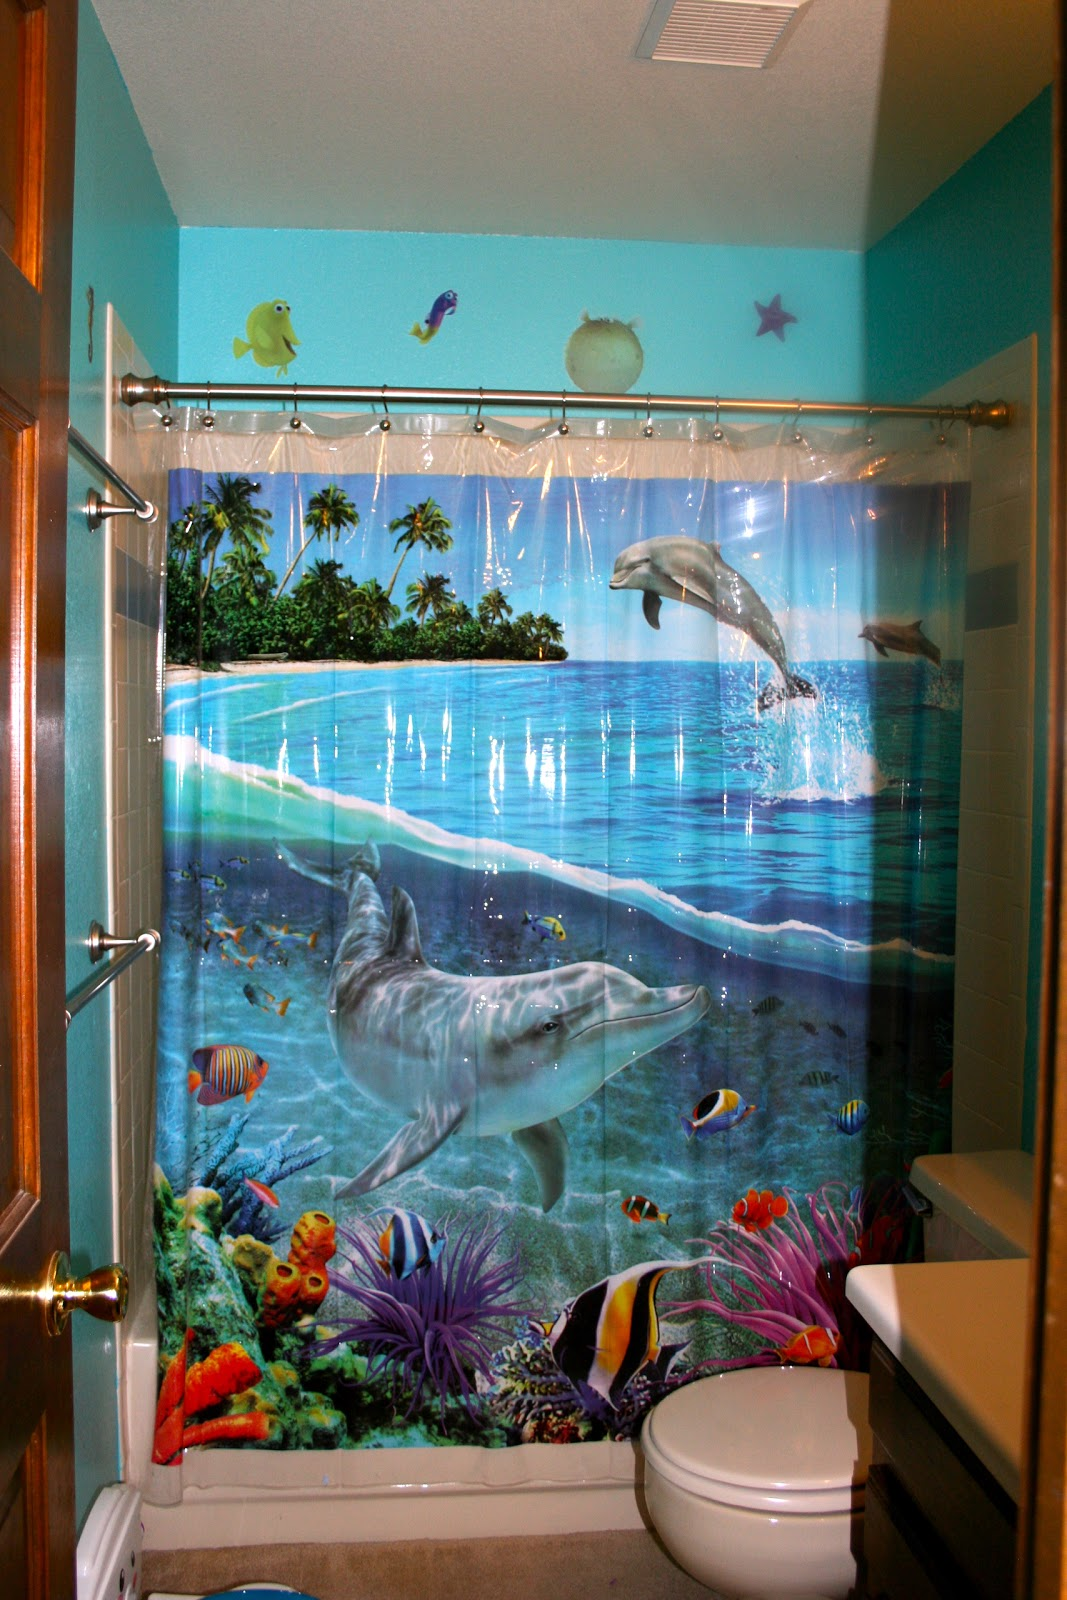 finding nemo bathroom 28 images finding nemo shower curtain myshowercurtains finding nemo. Black Bedroom Furniture Sets. Home Design Ideas